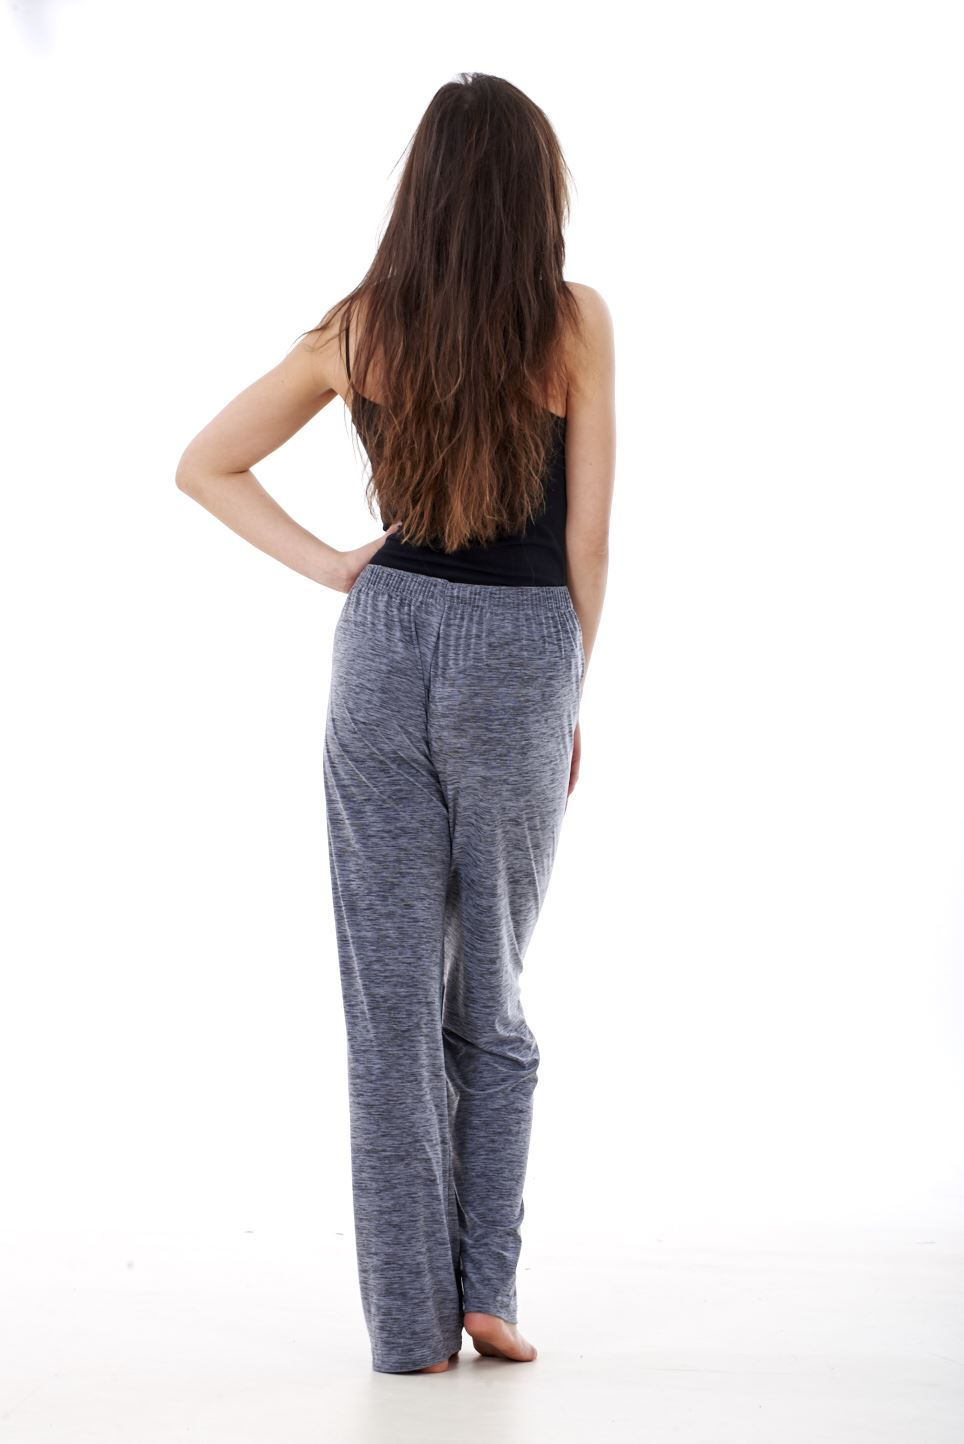 Free shipping BOTH ways on pants womens straight leg, from our vast selection of styles. Fast delivery, and 24/7/ real-person service with a smile. Click or call